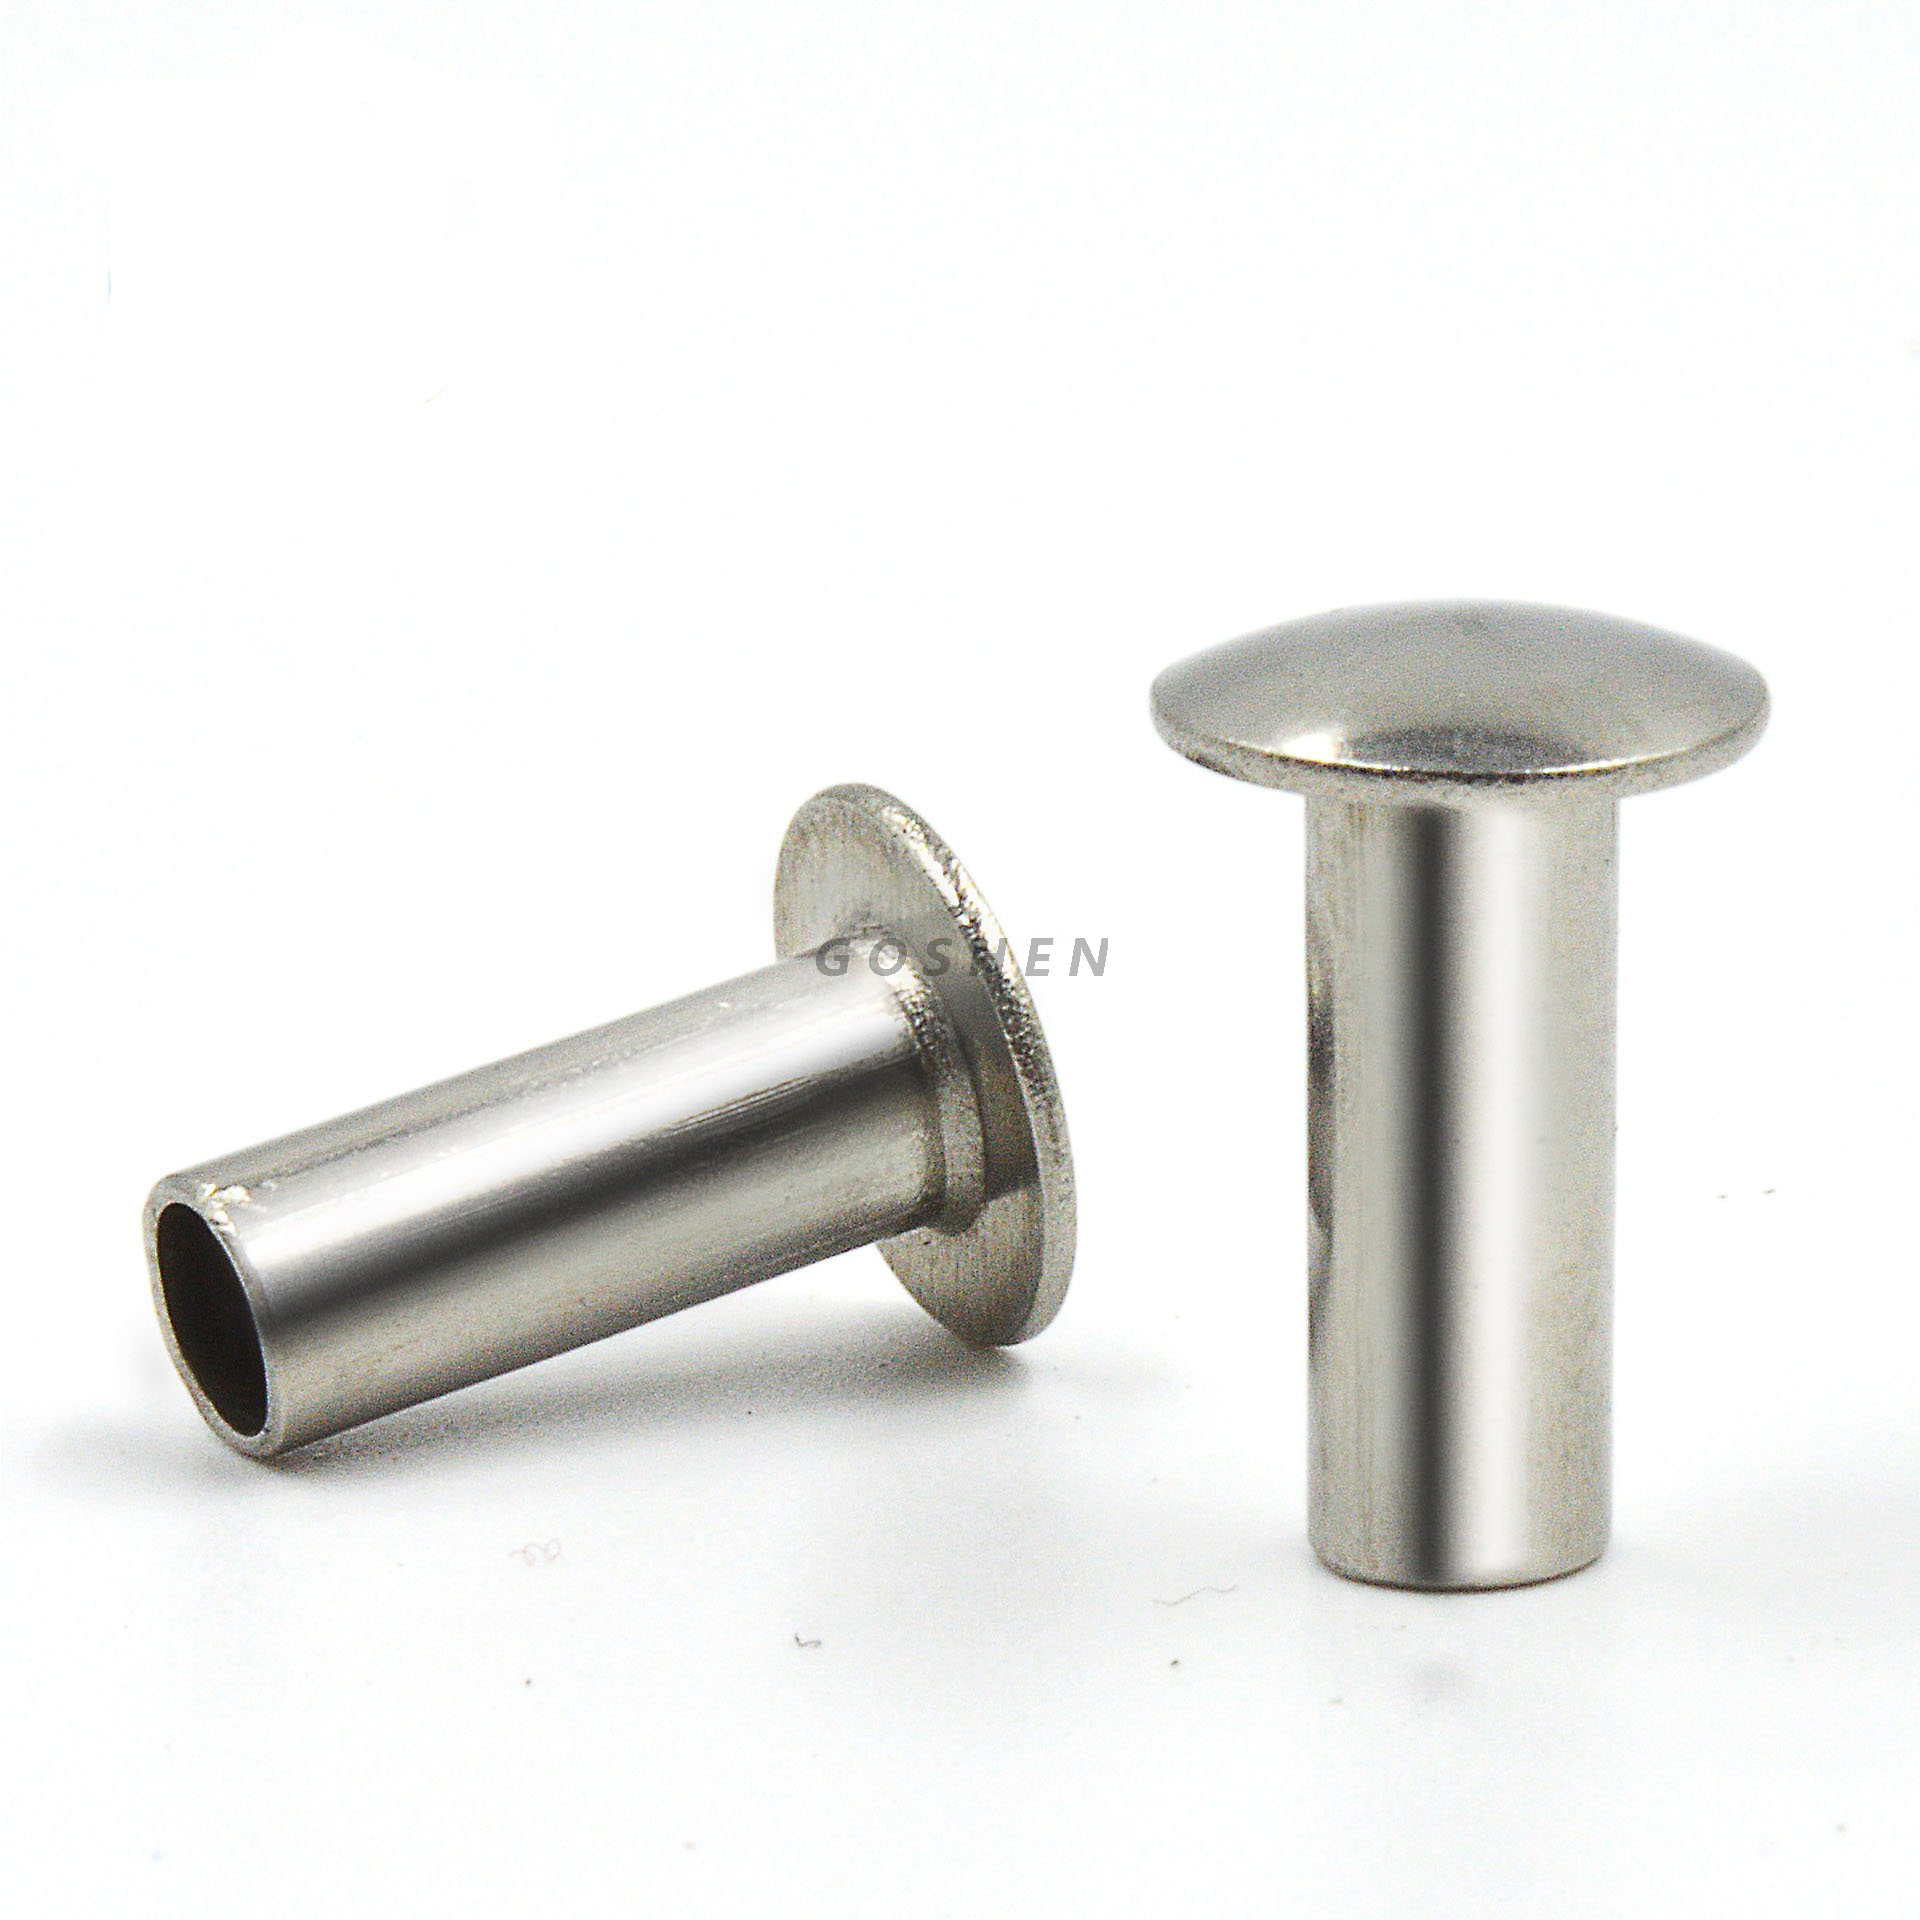 Stainless Steel 304 316 1.2 Oval Head Semi-Tubular Rivets